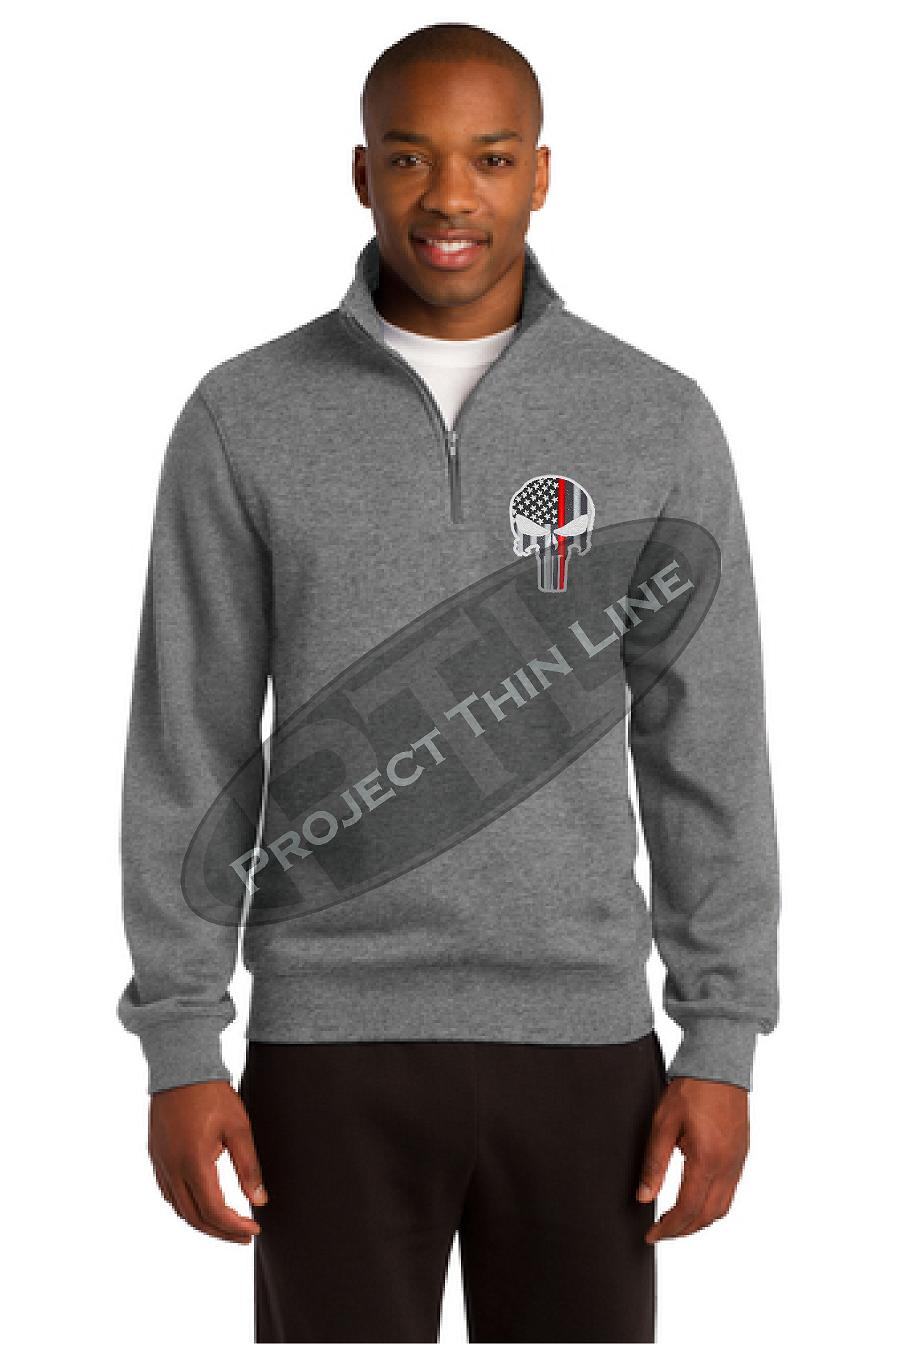 Grey Thin Red Line Punisher Skull 1/4 Zip Fleece Sweatshirt